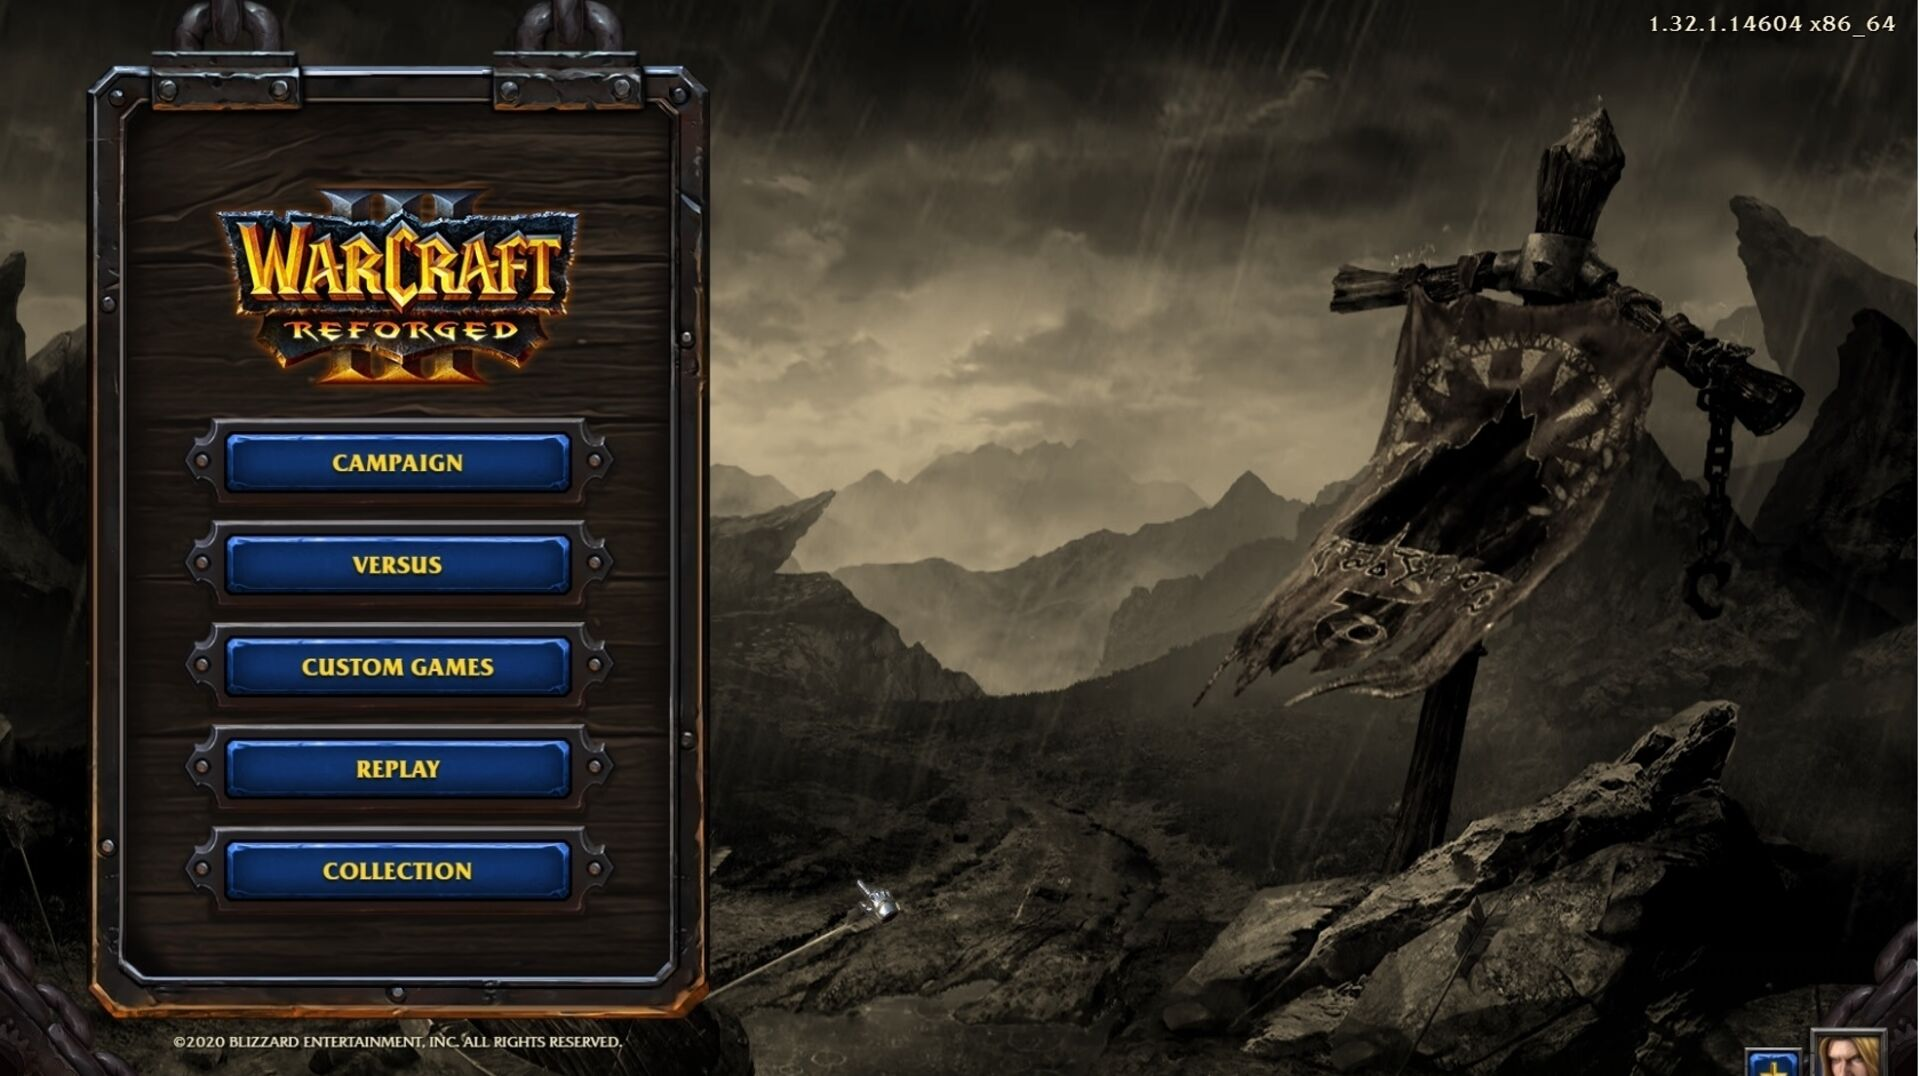 Blizzard Begins Warcraft 3 Reforged S Road To Recovery With 2gb - Classic Mode Obtain 5 Recovery Items